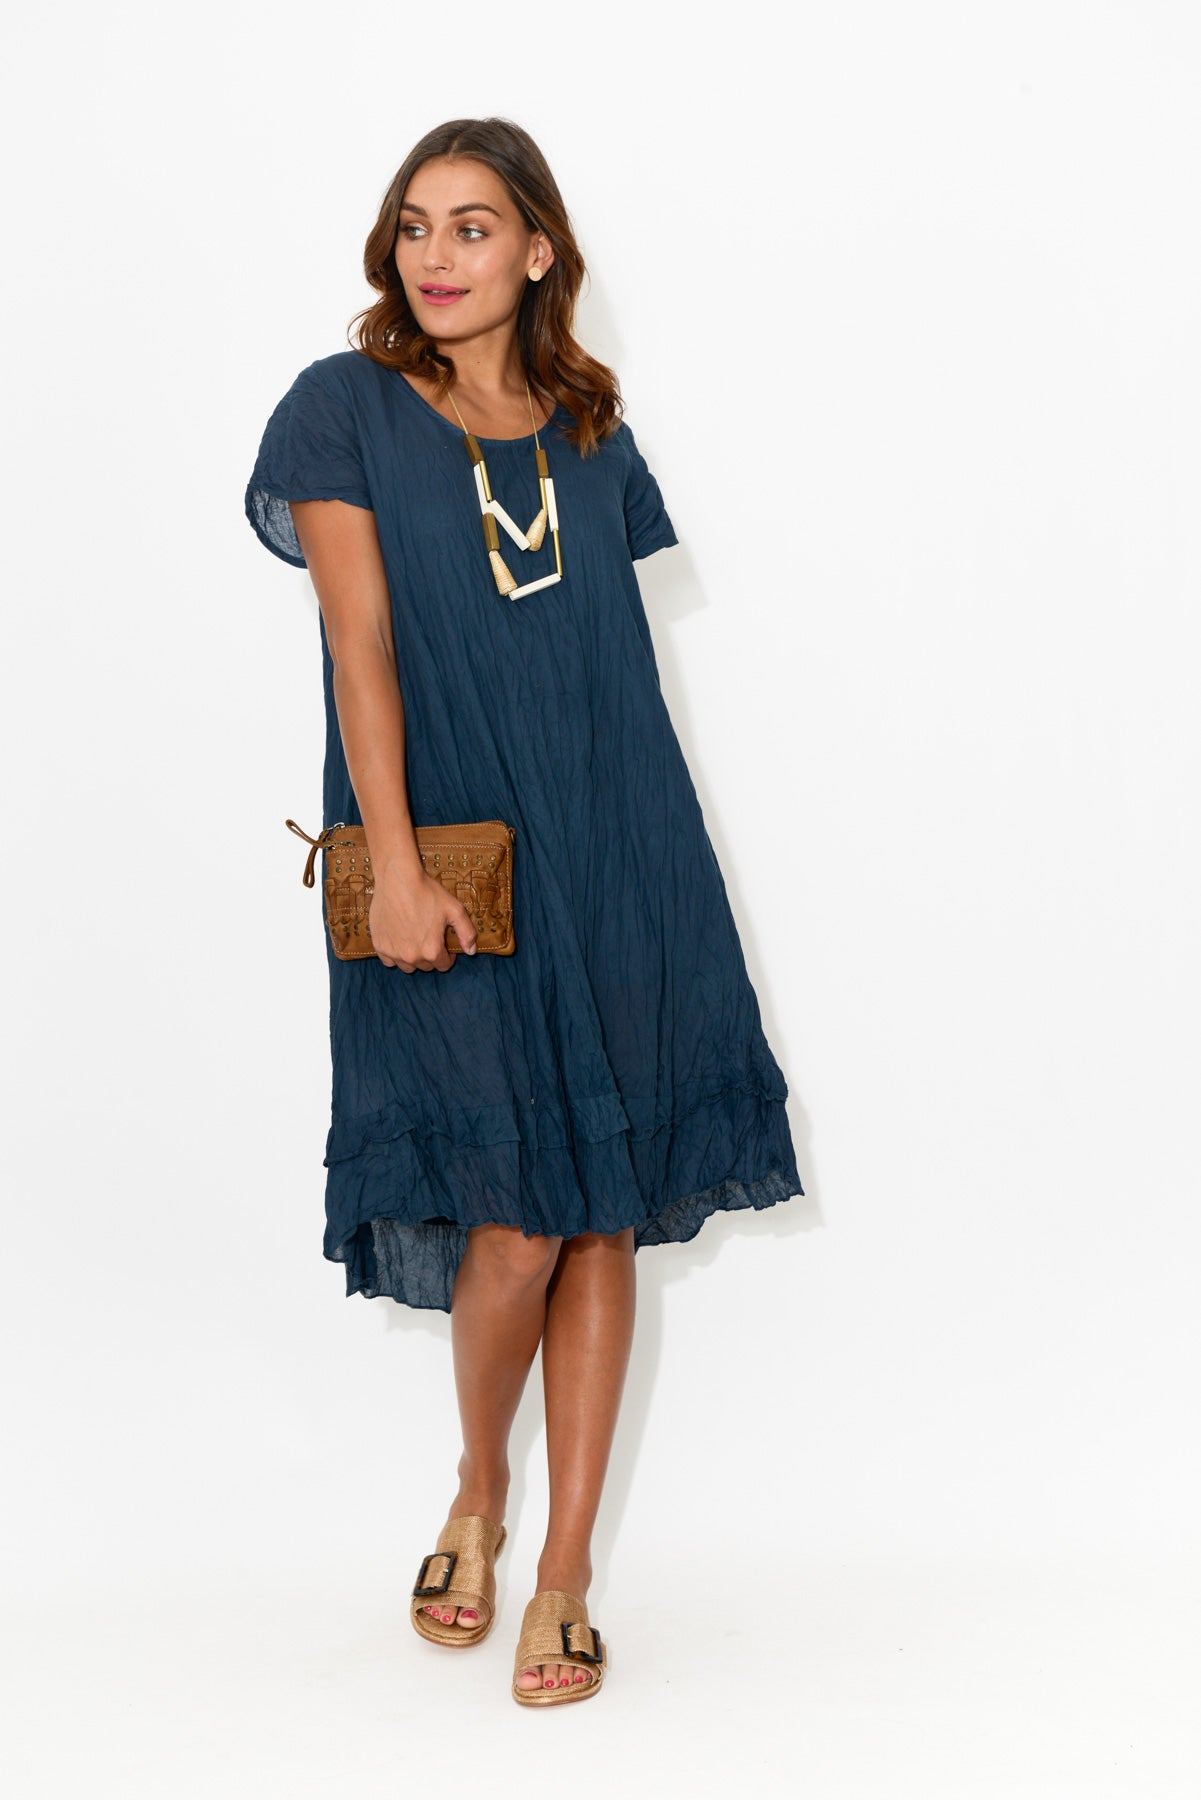 Navy Crinkle Cotton Swing Dress - Blue Bungalow